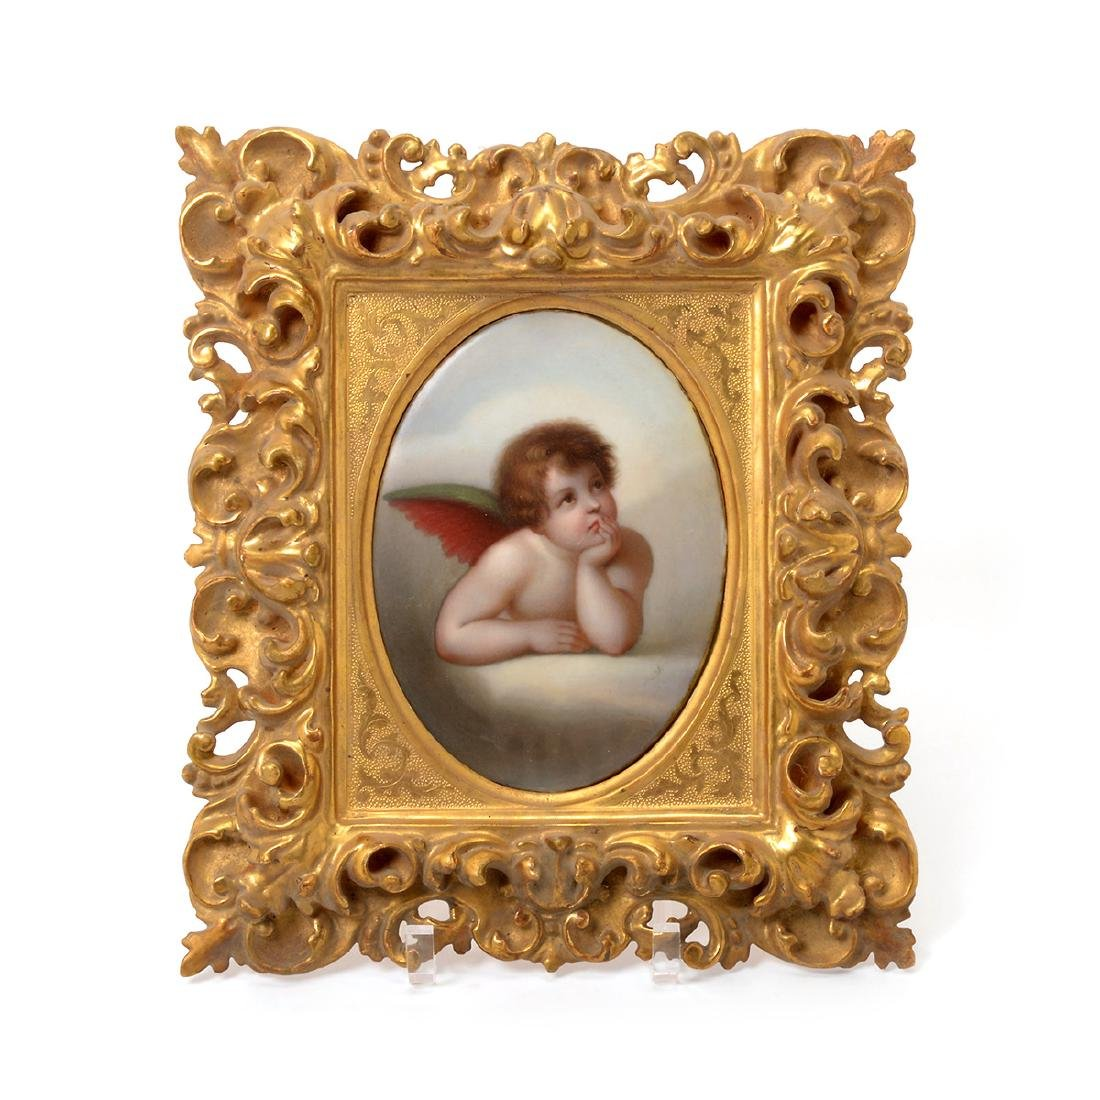 Two Italian Porcelain Plaques of Angels - 2